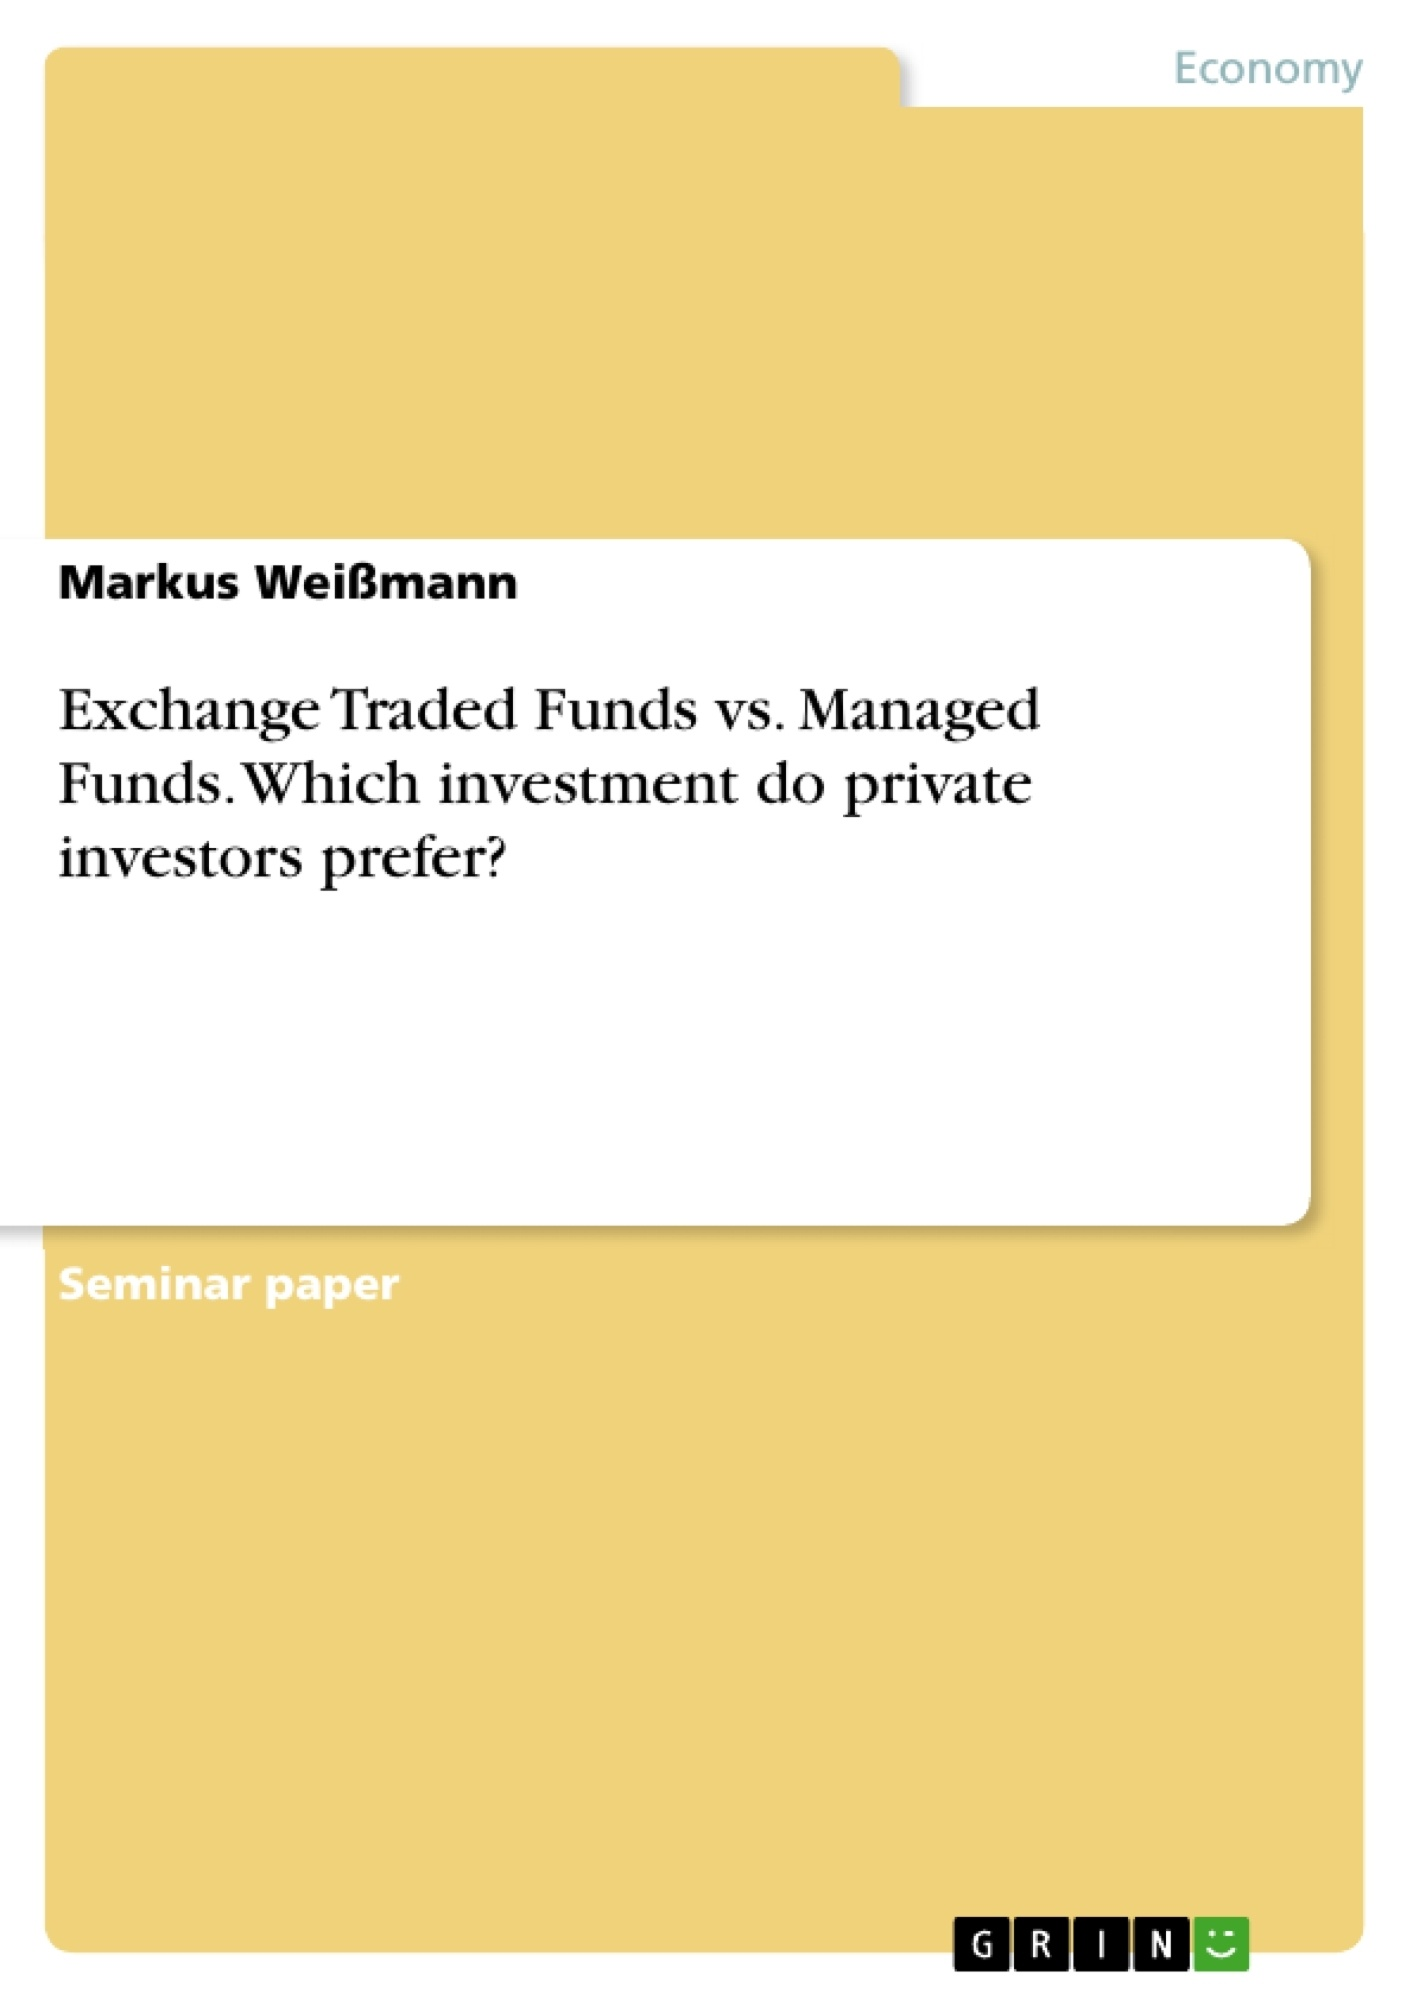 Title: Exchange Traded Funds vs. Managed Funds. Which investment do private investors prefer?